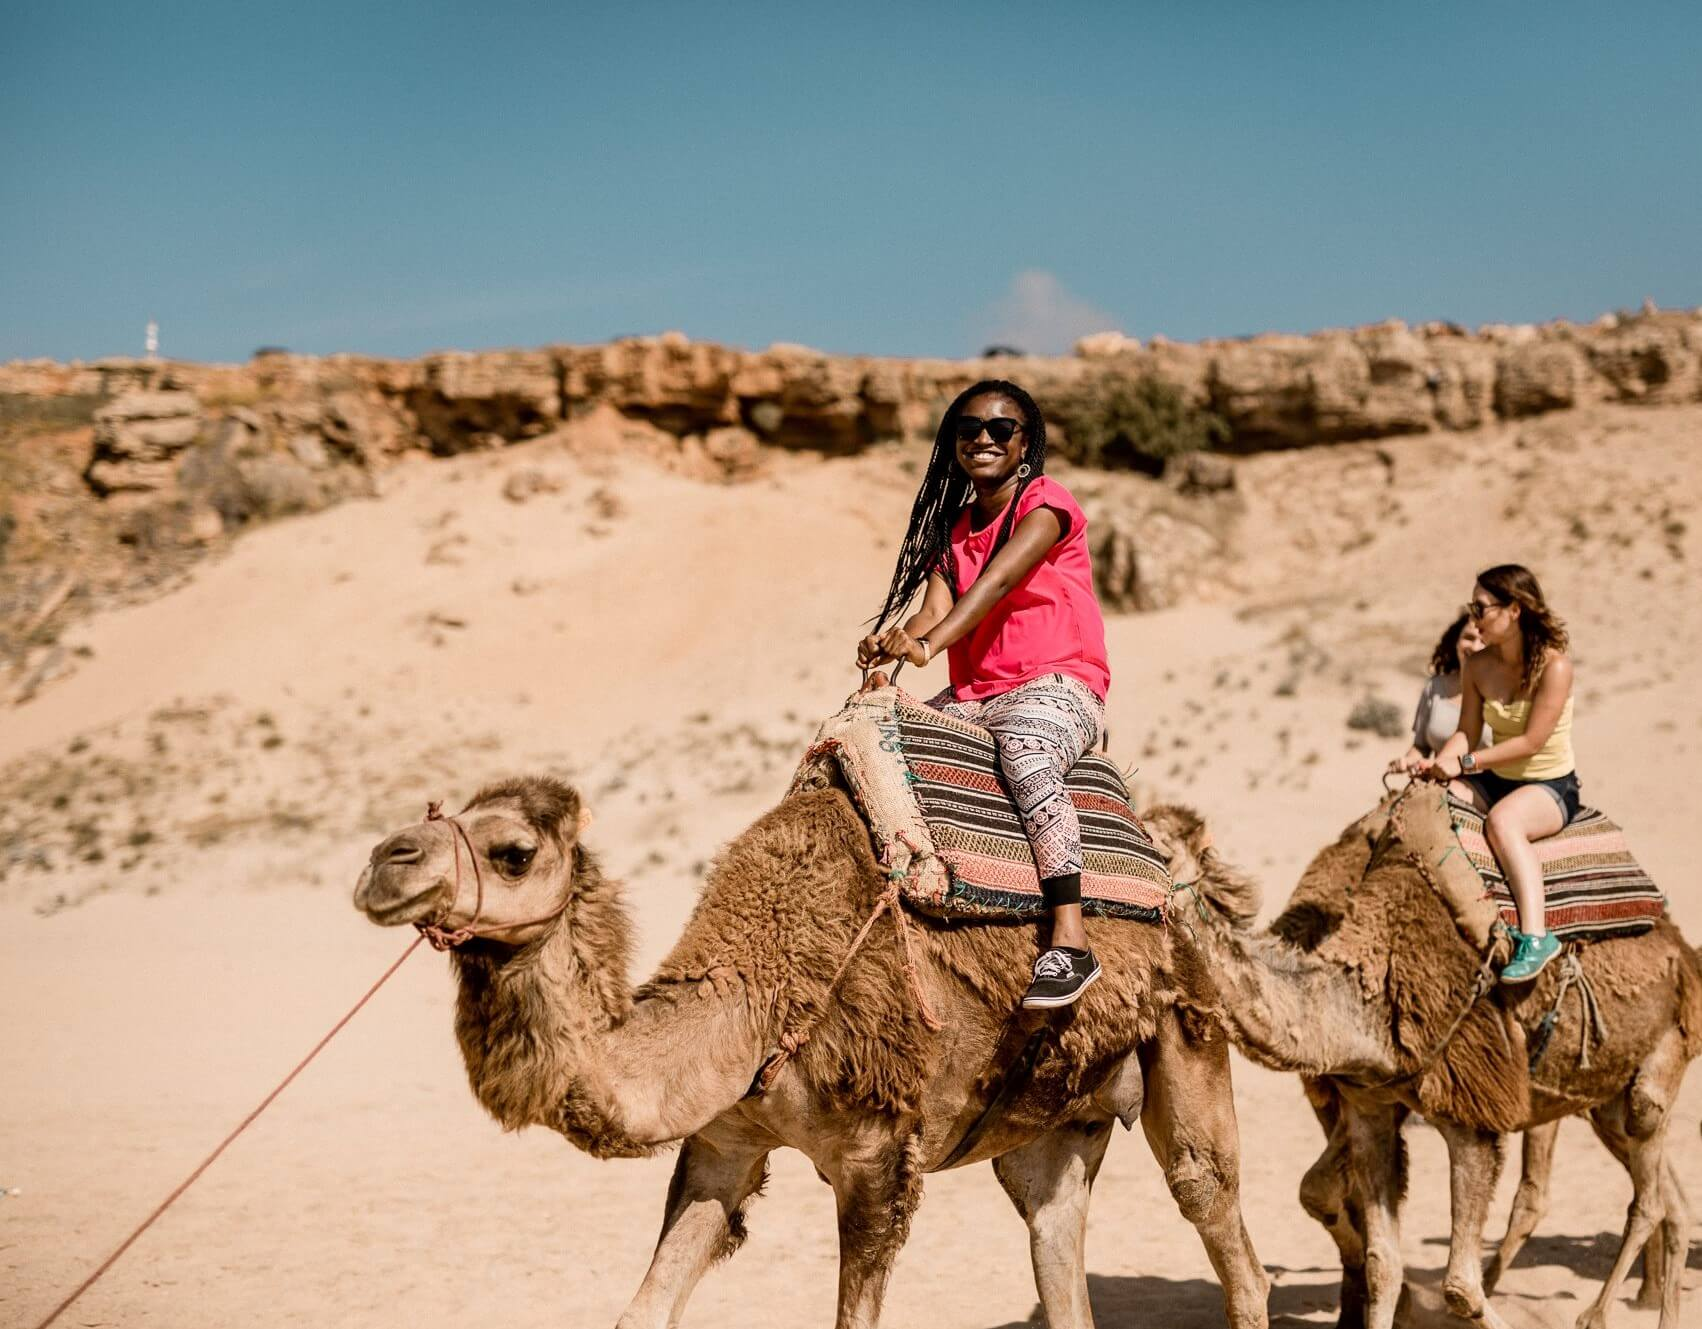 How to teach english abroad with no experience - Morocco